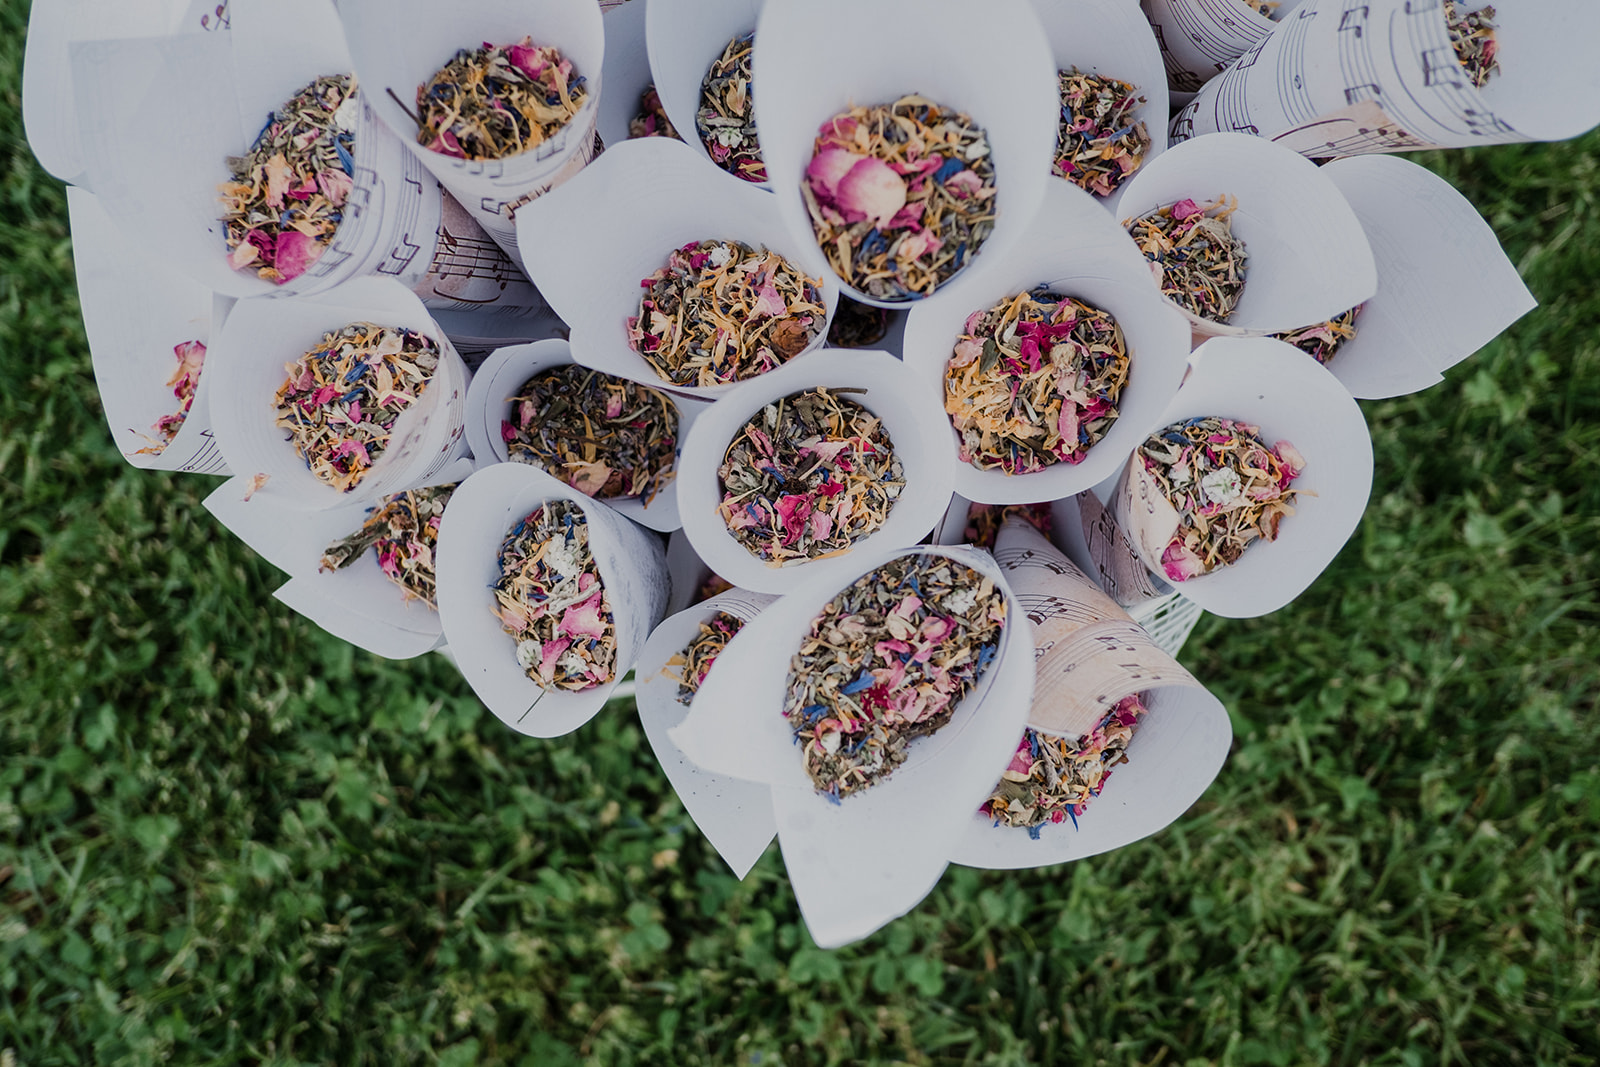 Cones filled with flower petals are ready for guests to toss at the bride and groom after their outdoor wedding ceremony at Blue Hill Farm in Waterford, VA.